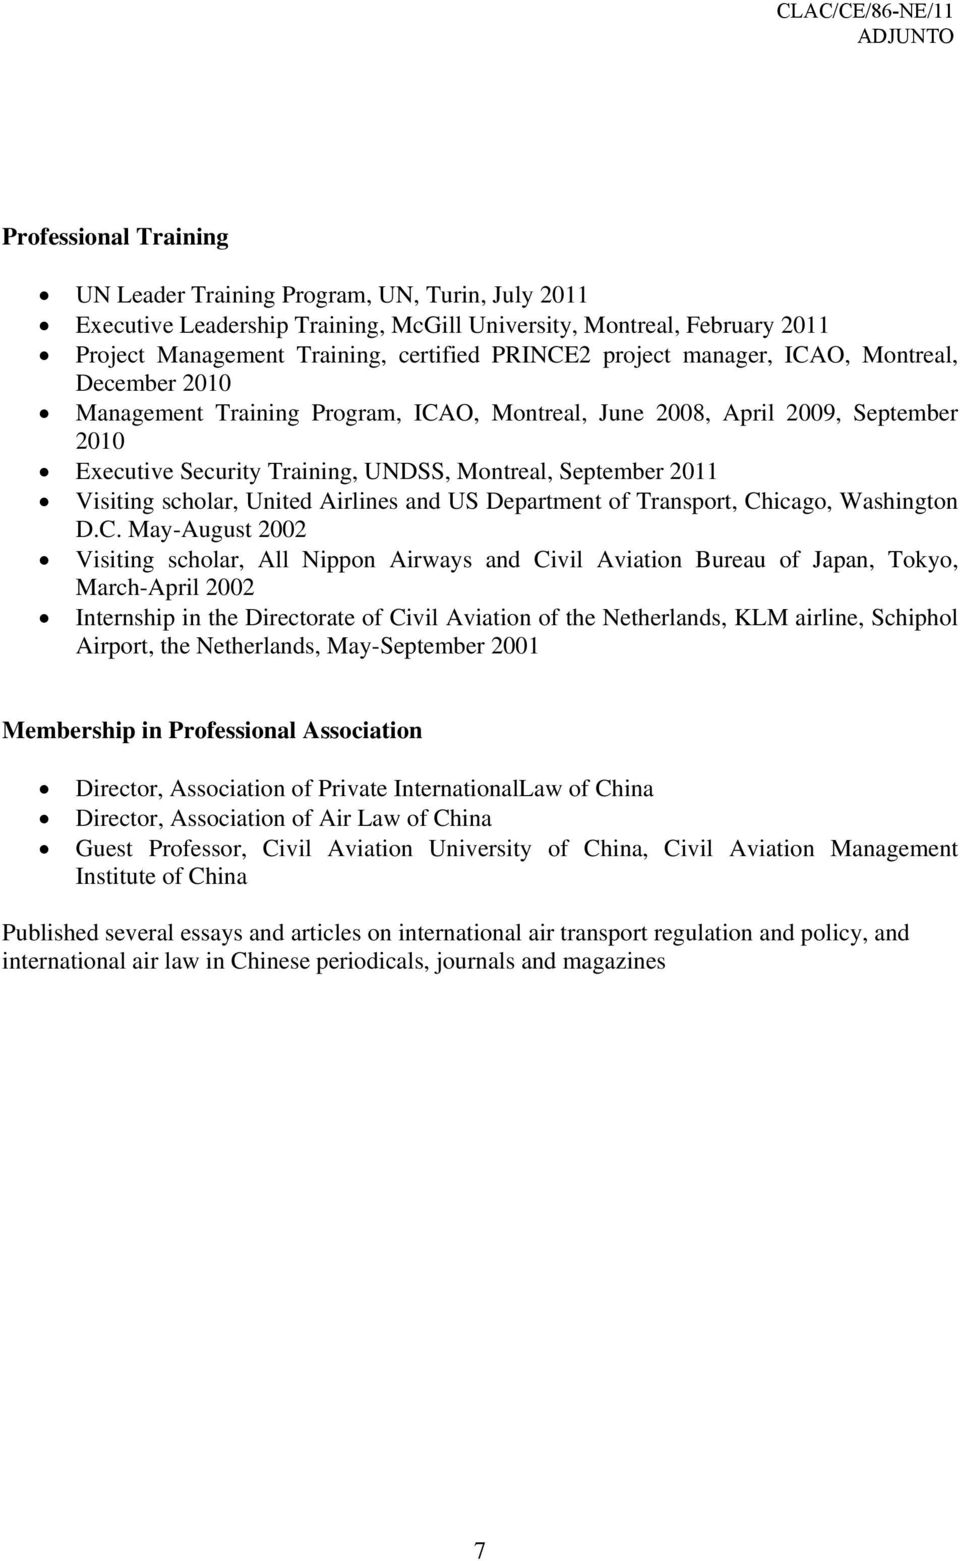 scholar, United Airlines and US Department of Transport, Ch